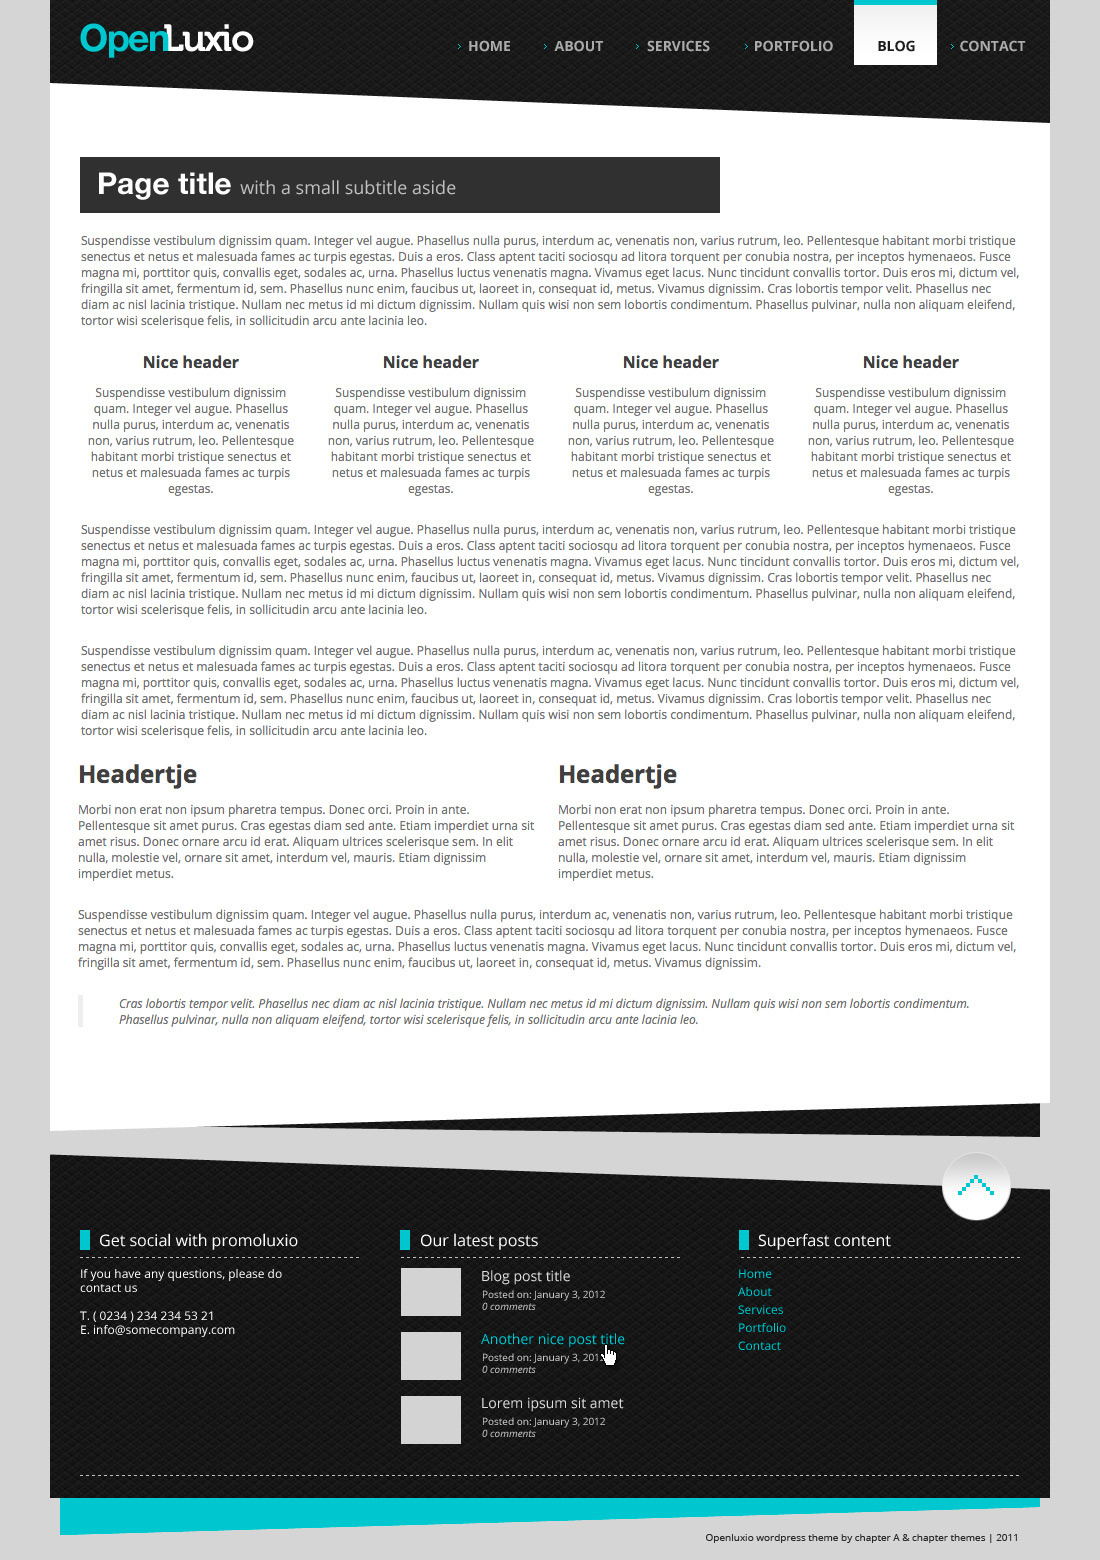 Openluxio wordpress theme - Cleancore homepage. Columns are not fixed, You can make any layout you need with the build in column options. So you could also have an 2 or 4 column layout on the homepage.